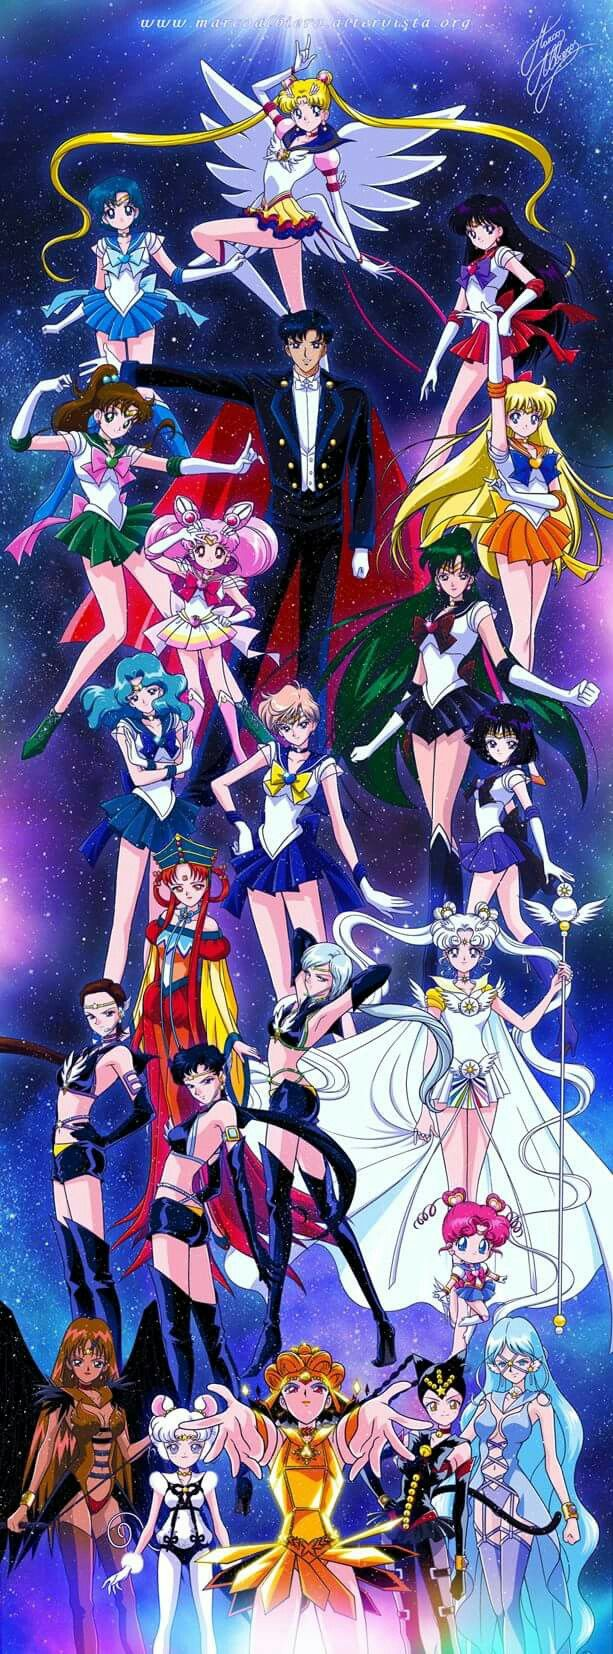 Marco Albiero Design | but why is Tuxedo Mask up here like he actually does shit lol